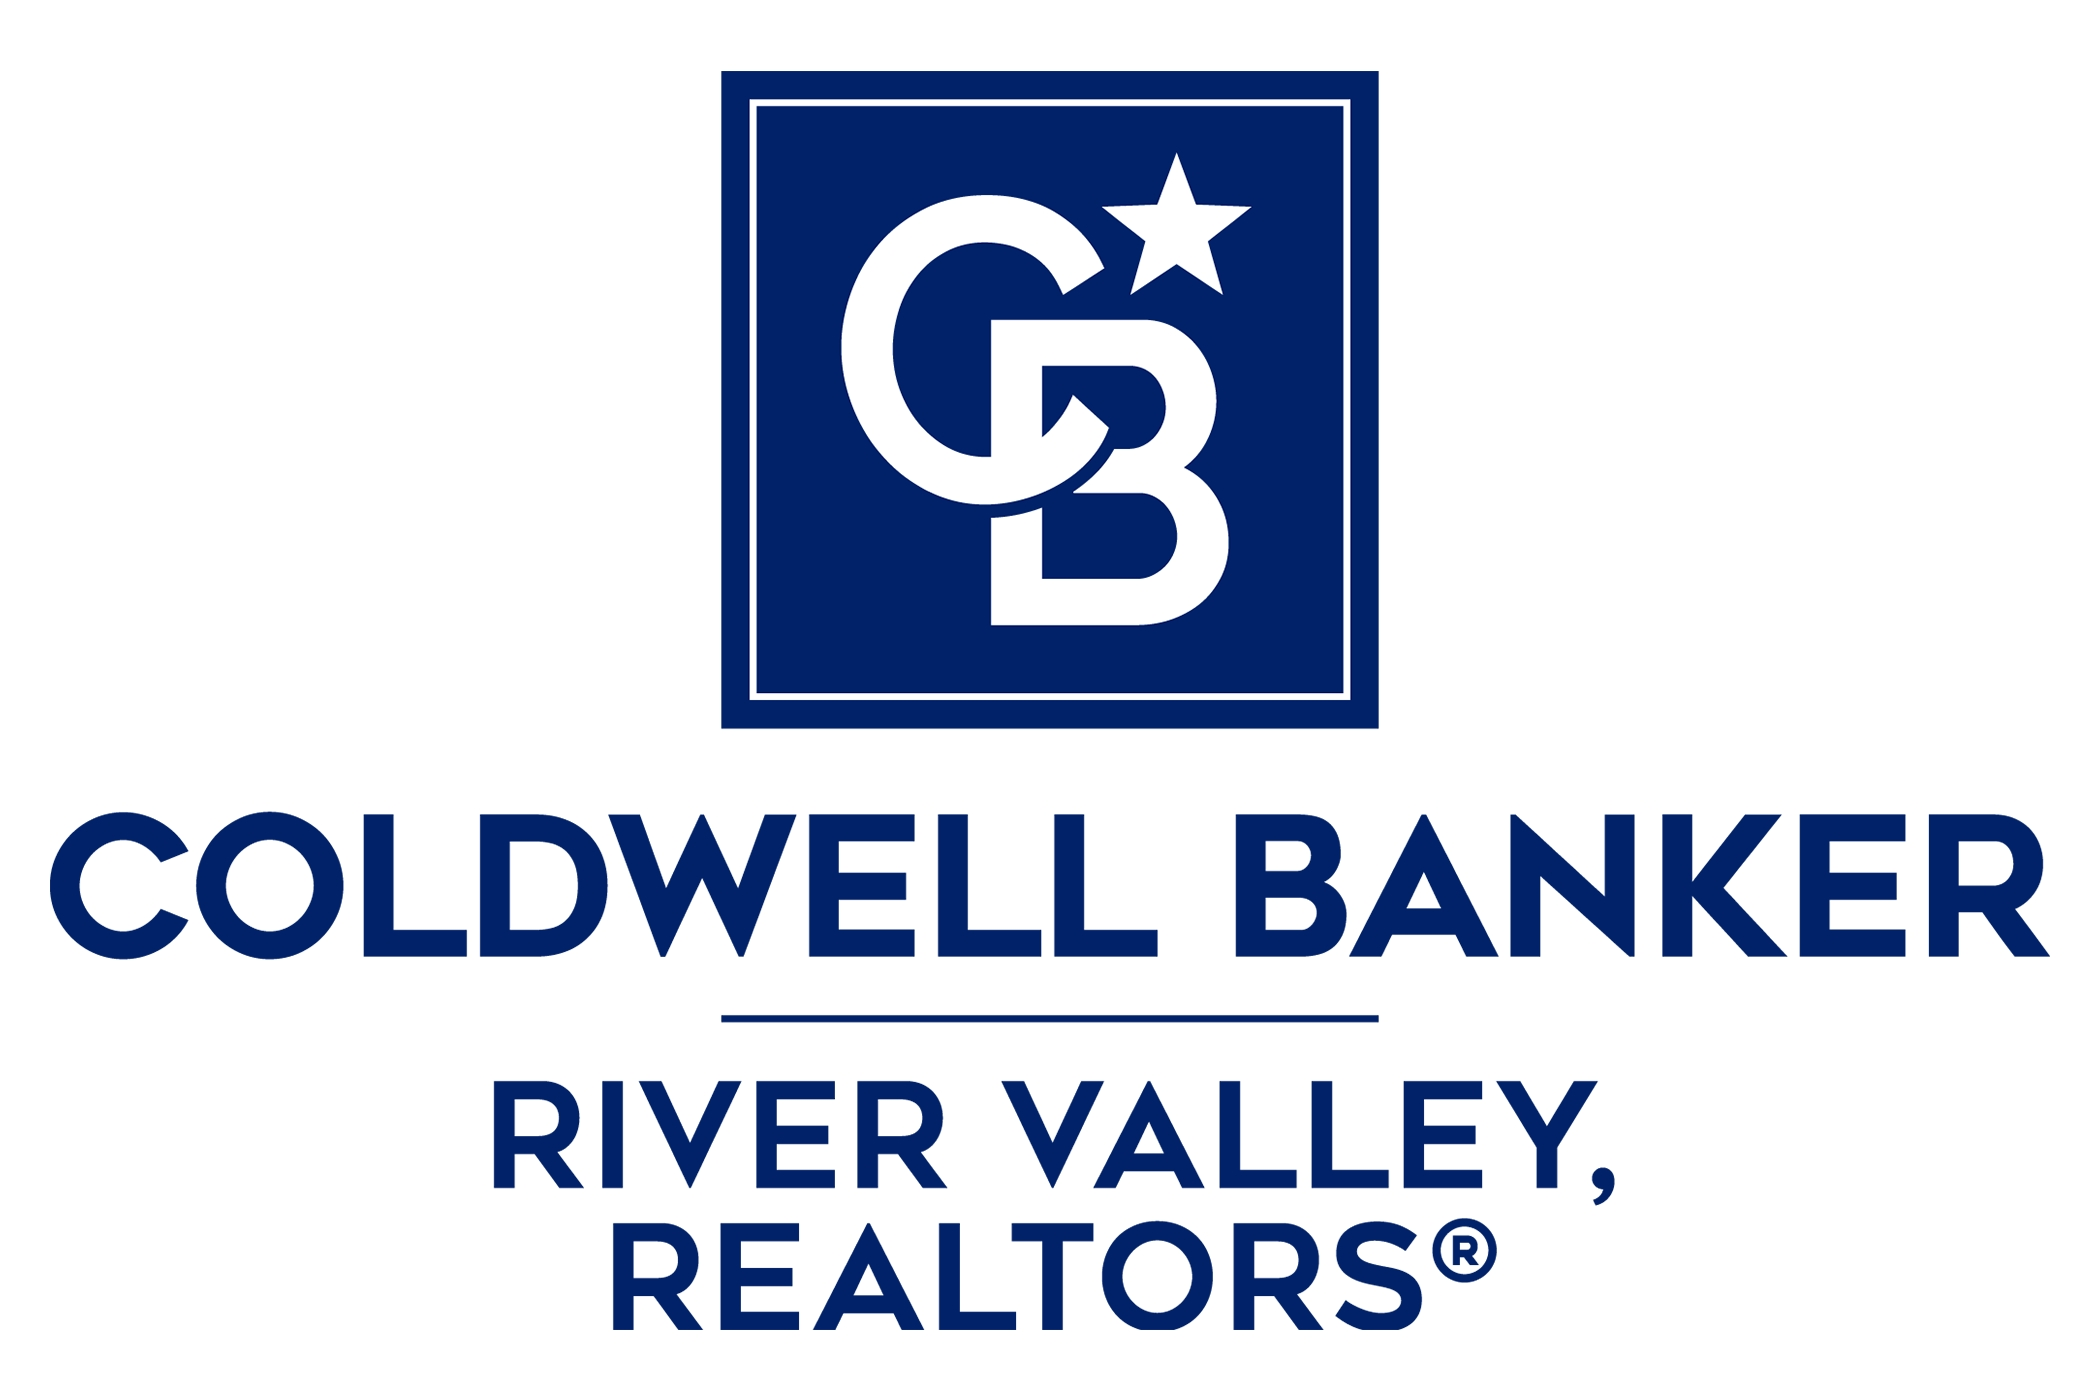 George Schwab - Coldwell Banker River Valley, REALTORS